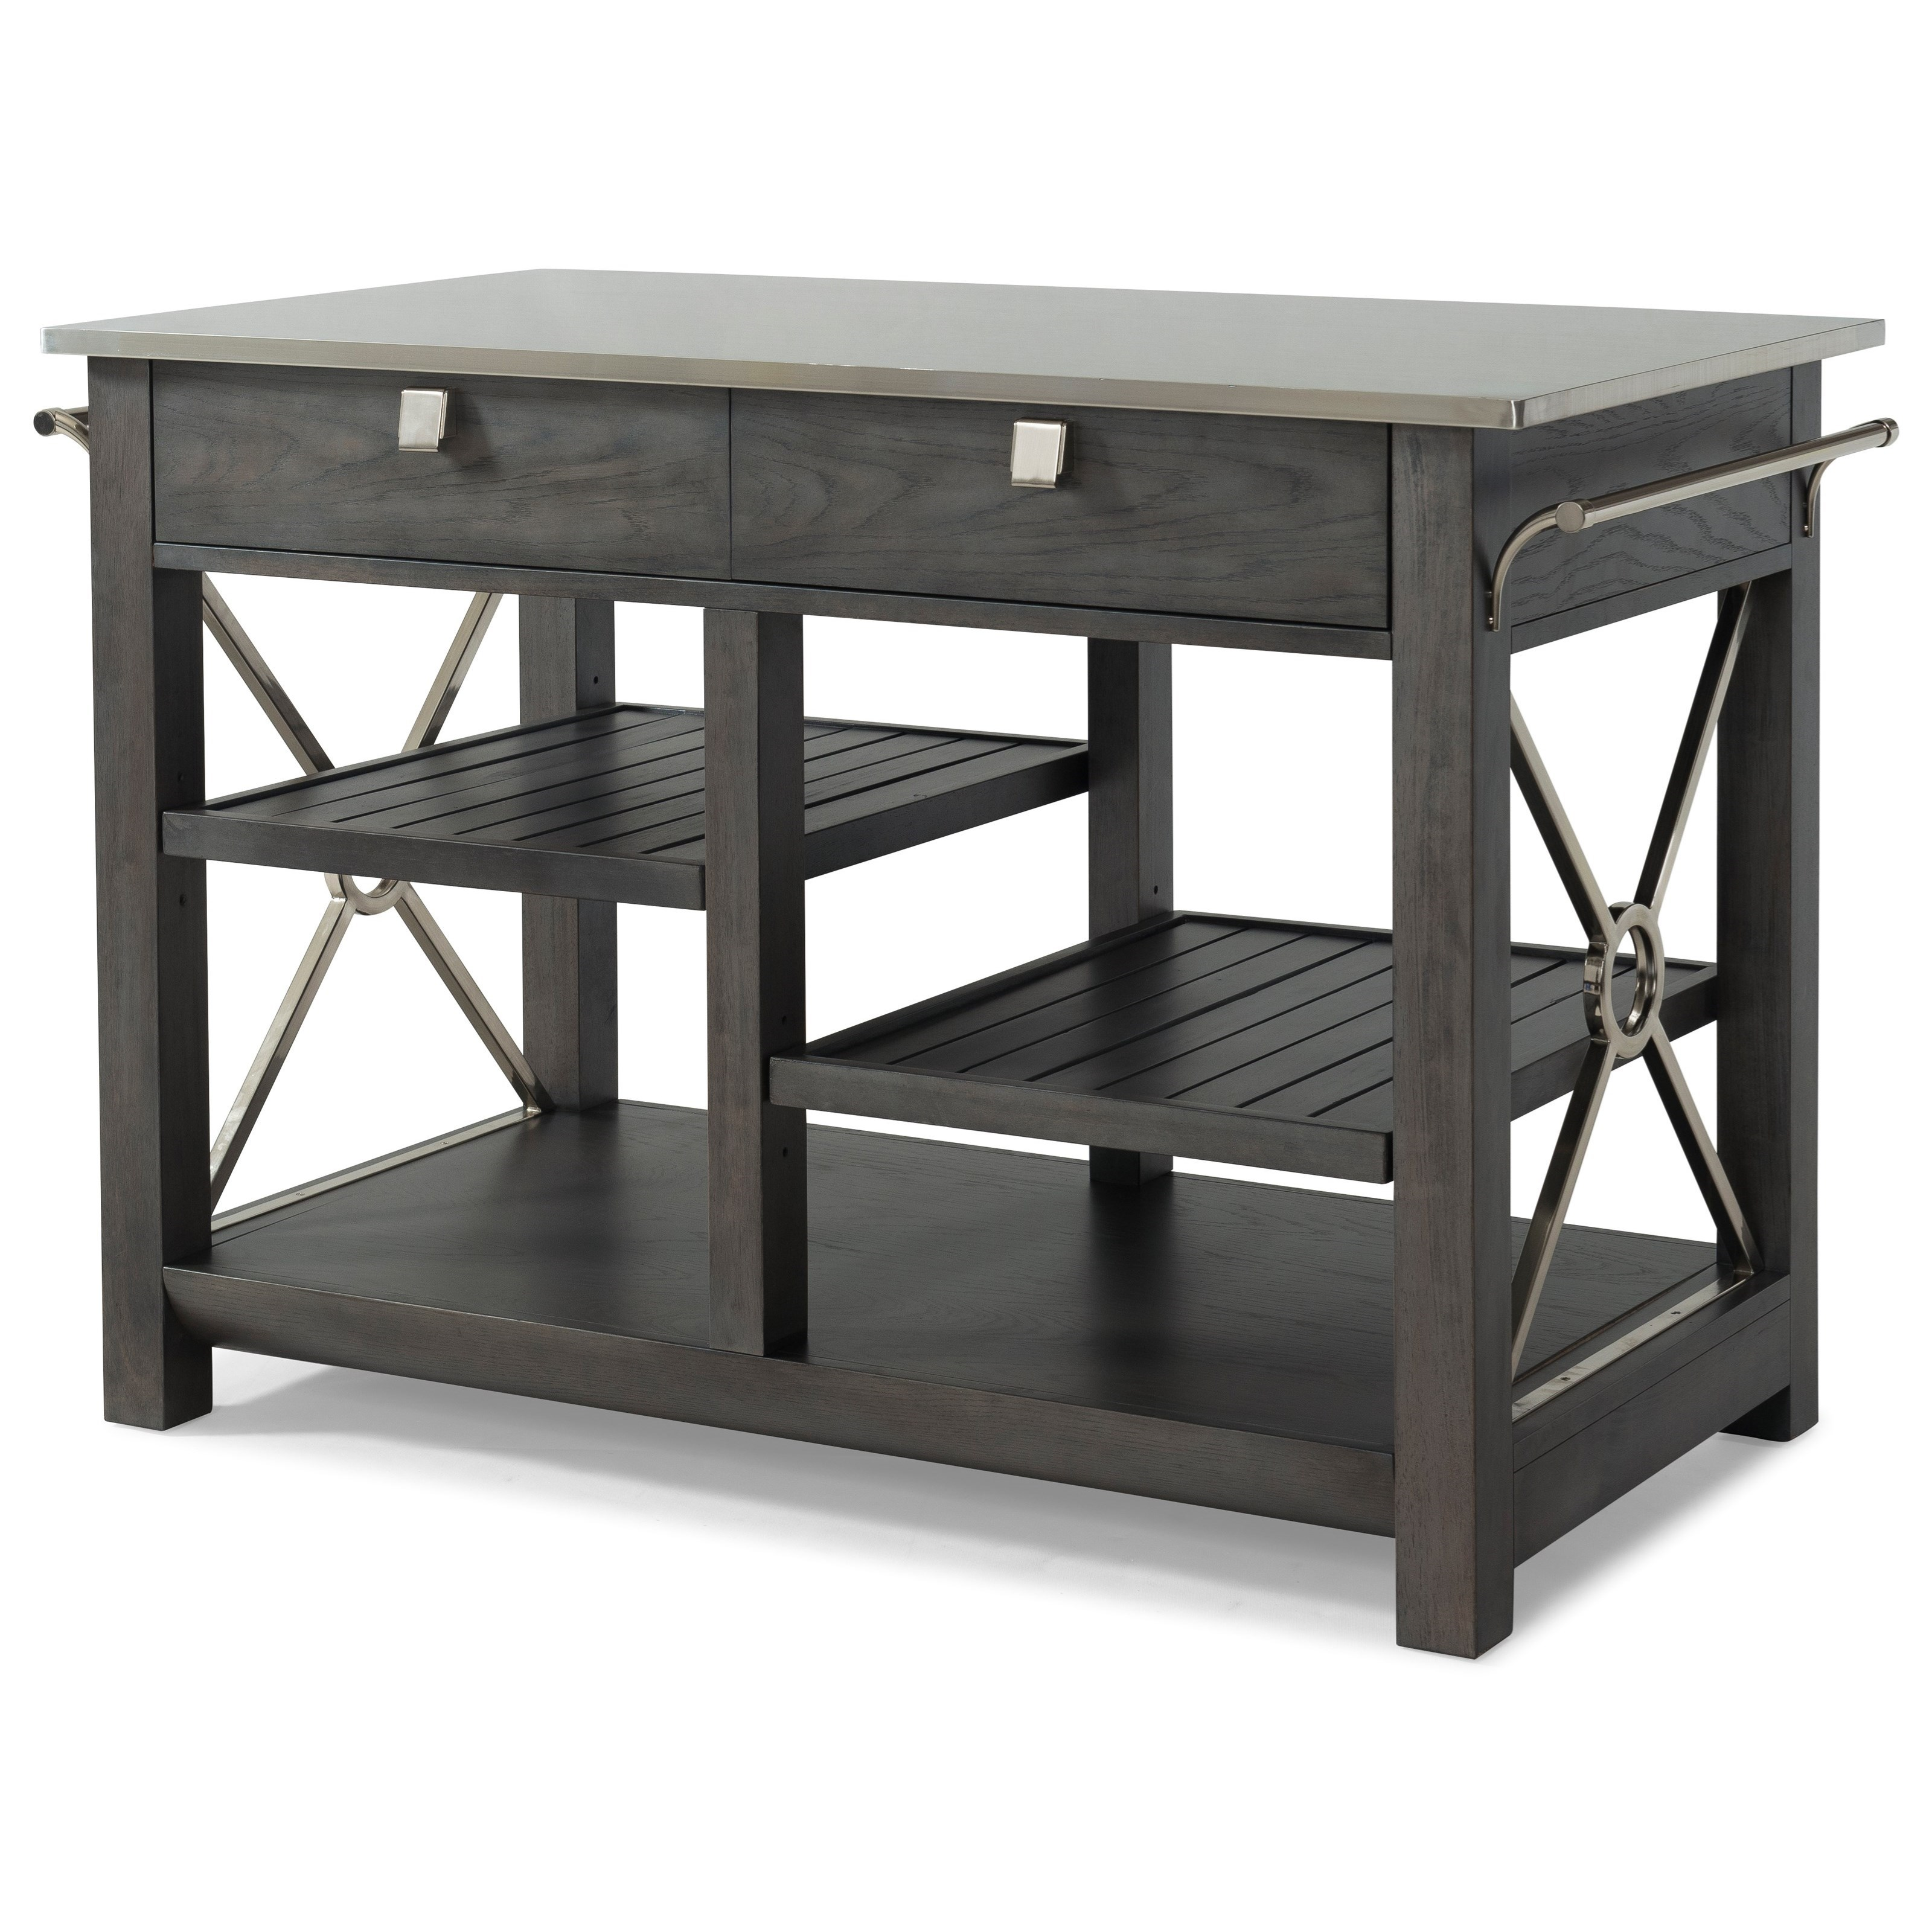 Here Comes Temptation Kitchen Island With Stainless Steel Top By Trisha Yearwood